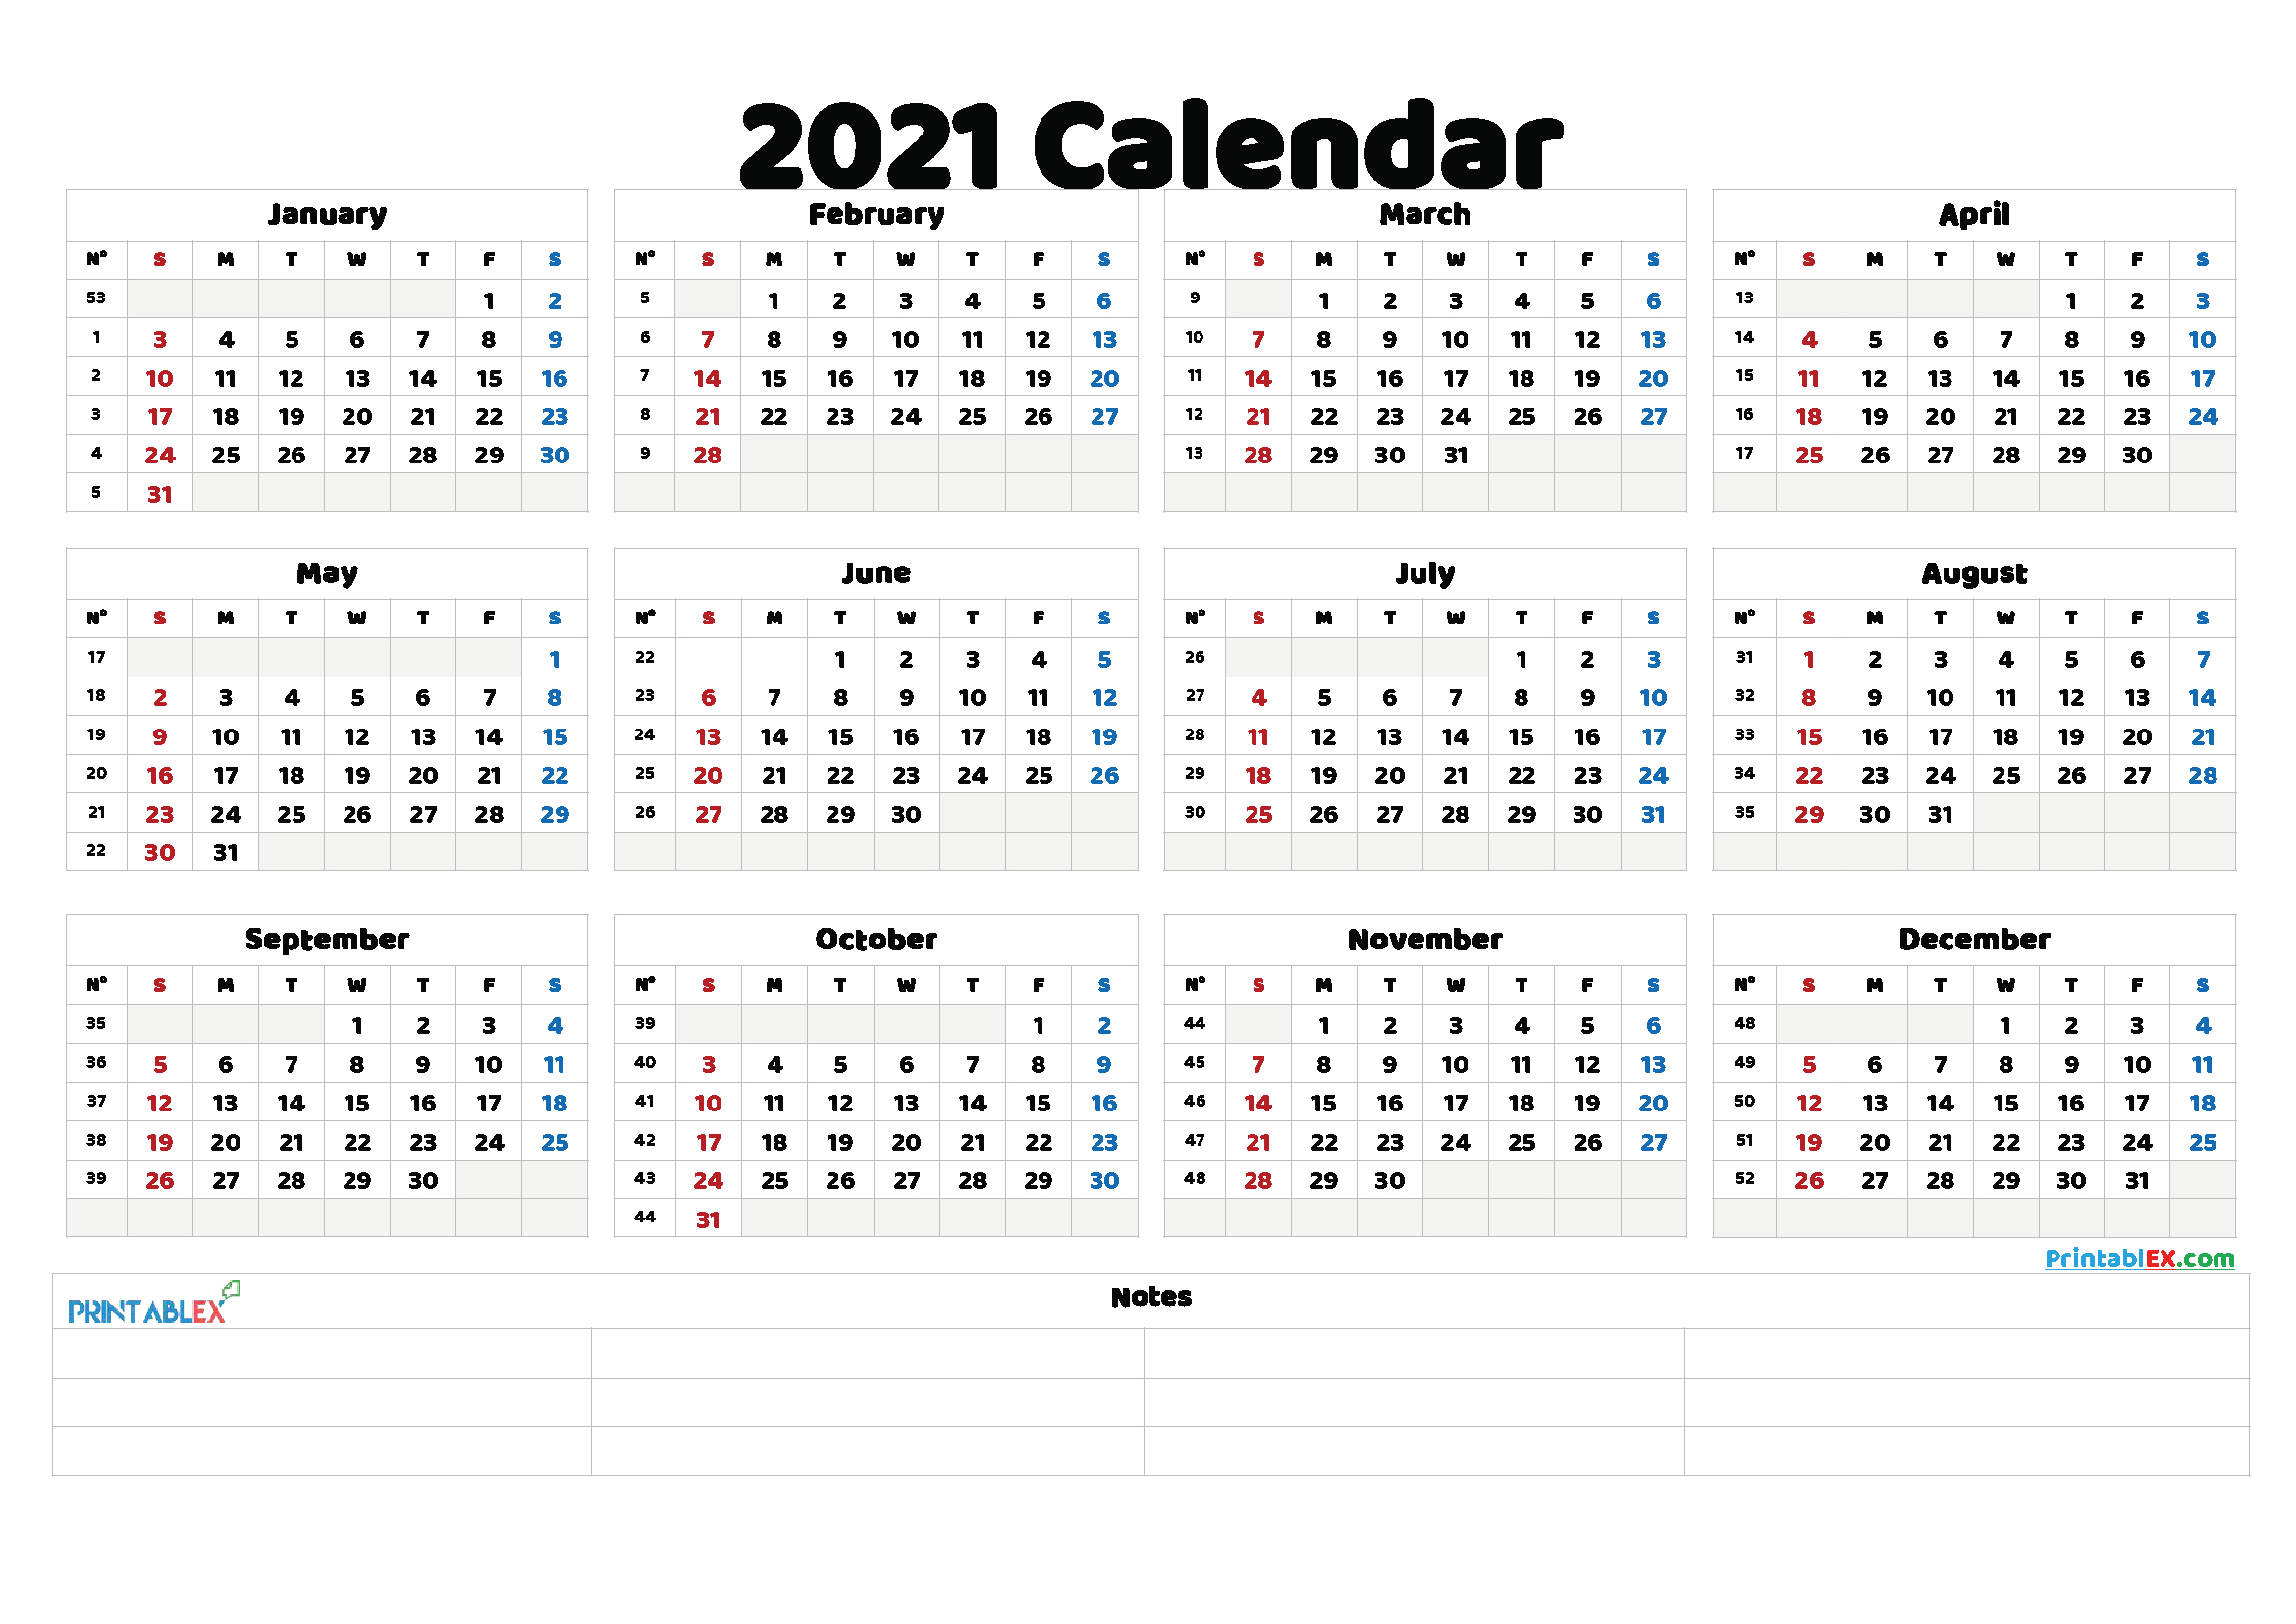 Free Printable 2021 Yearly Calendar - 21Ytw137